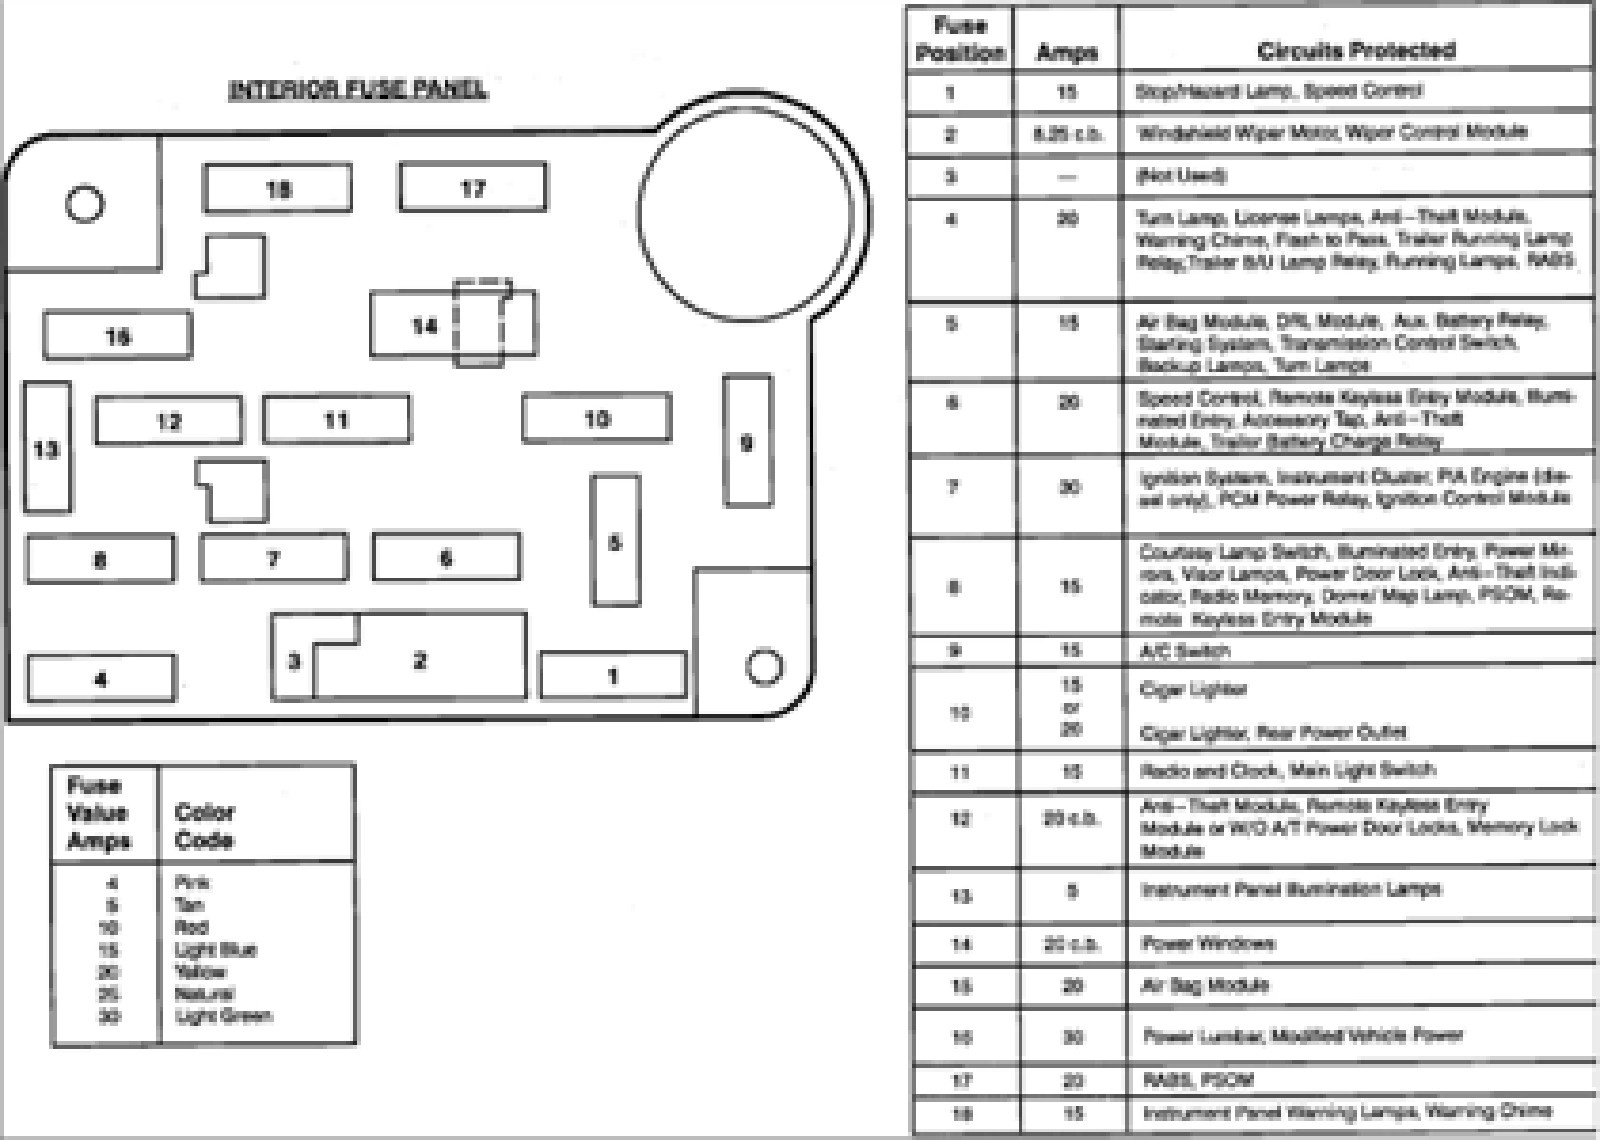 1993 F150 Fuse Diagram Great Design Of Wiring 2006 Ford Diagrams E 150 Questions For A Panel